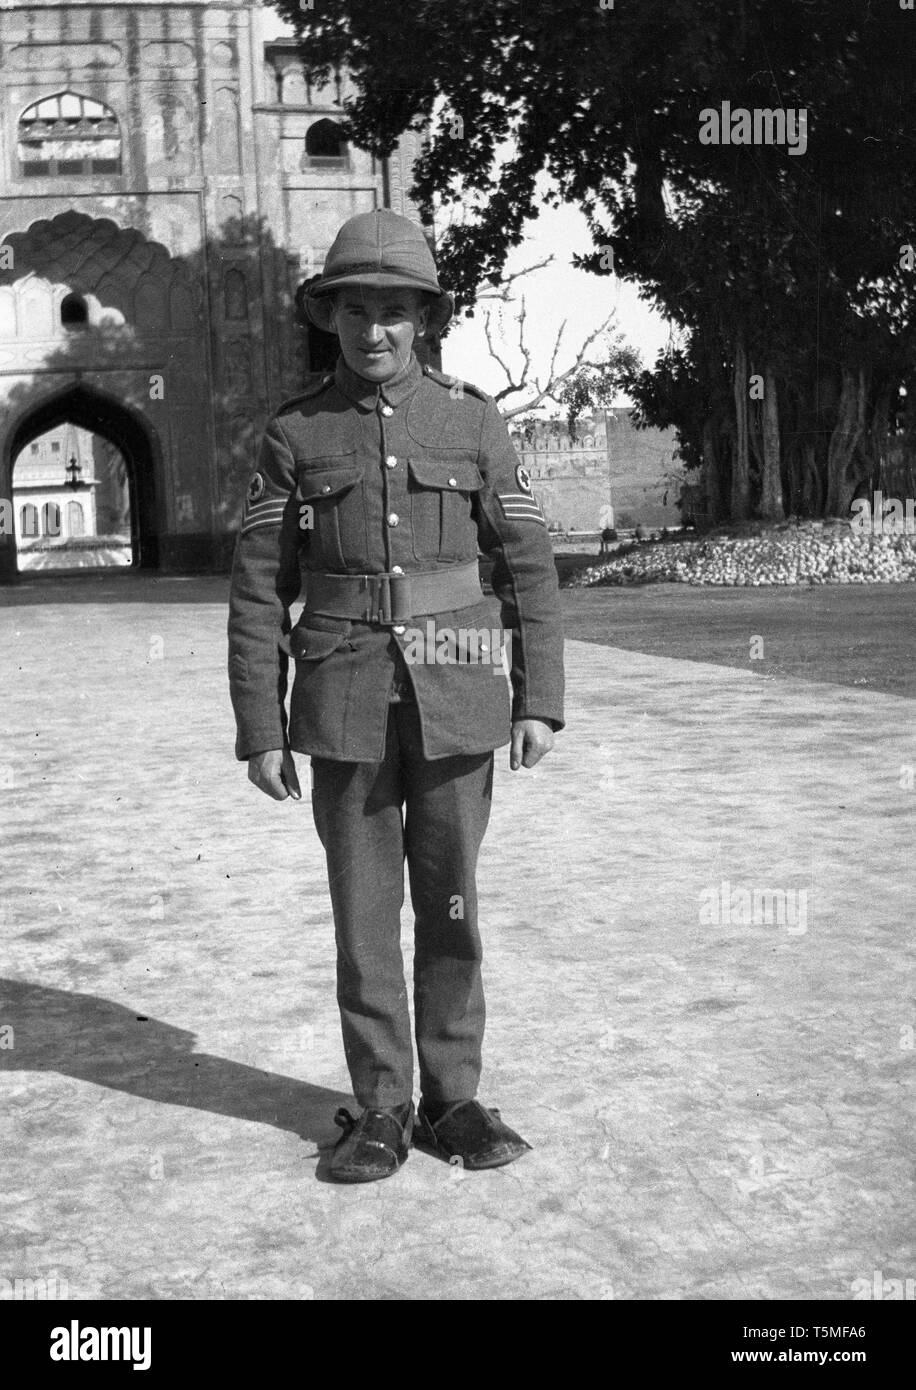 British medical corps soldier wearing pith helmet or Bombay Bowler in British India in Colonial days - Stock Image